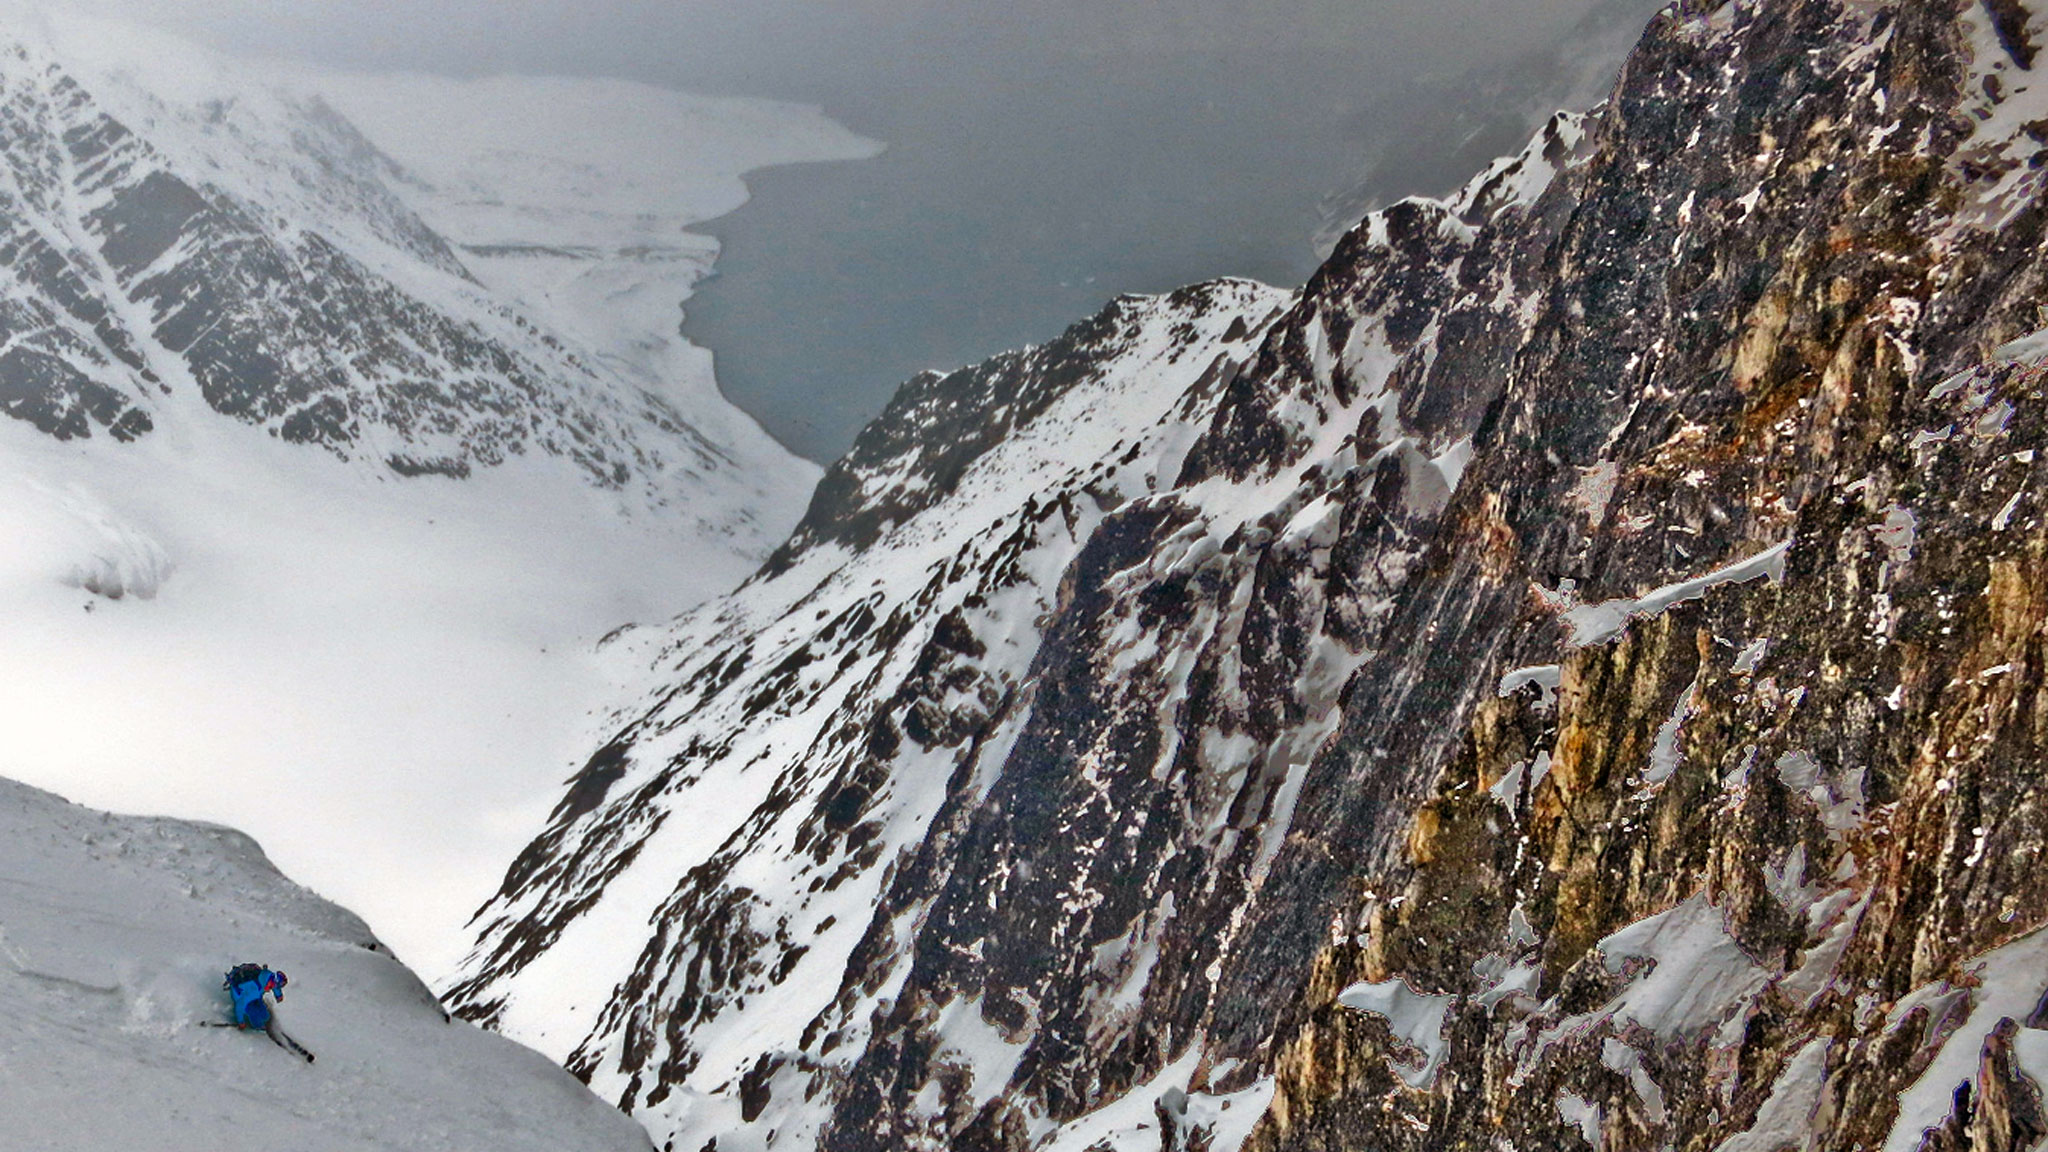 Pete Gaston shredding a first descent in Svalbard, Norway.